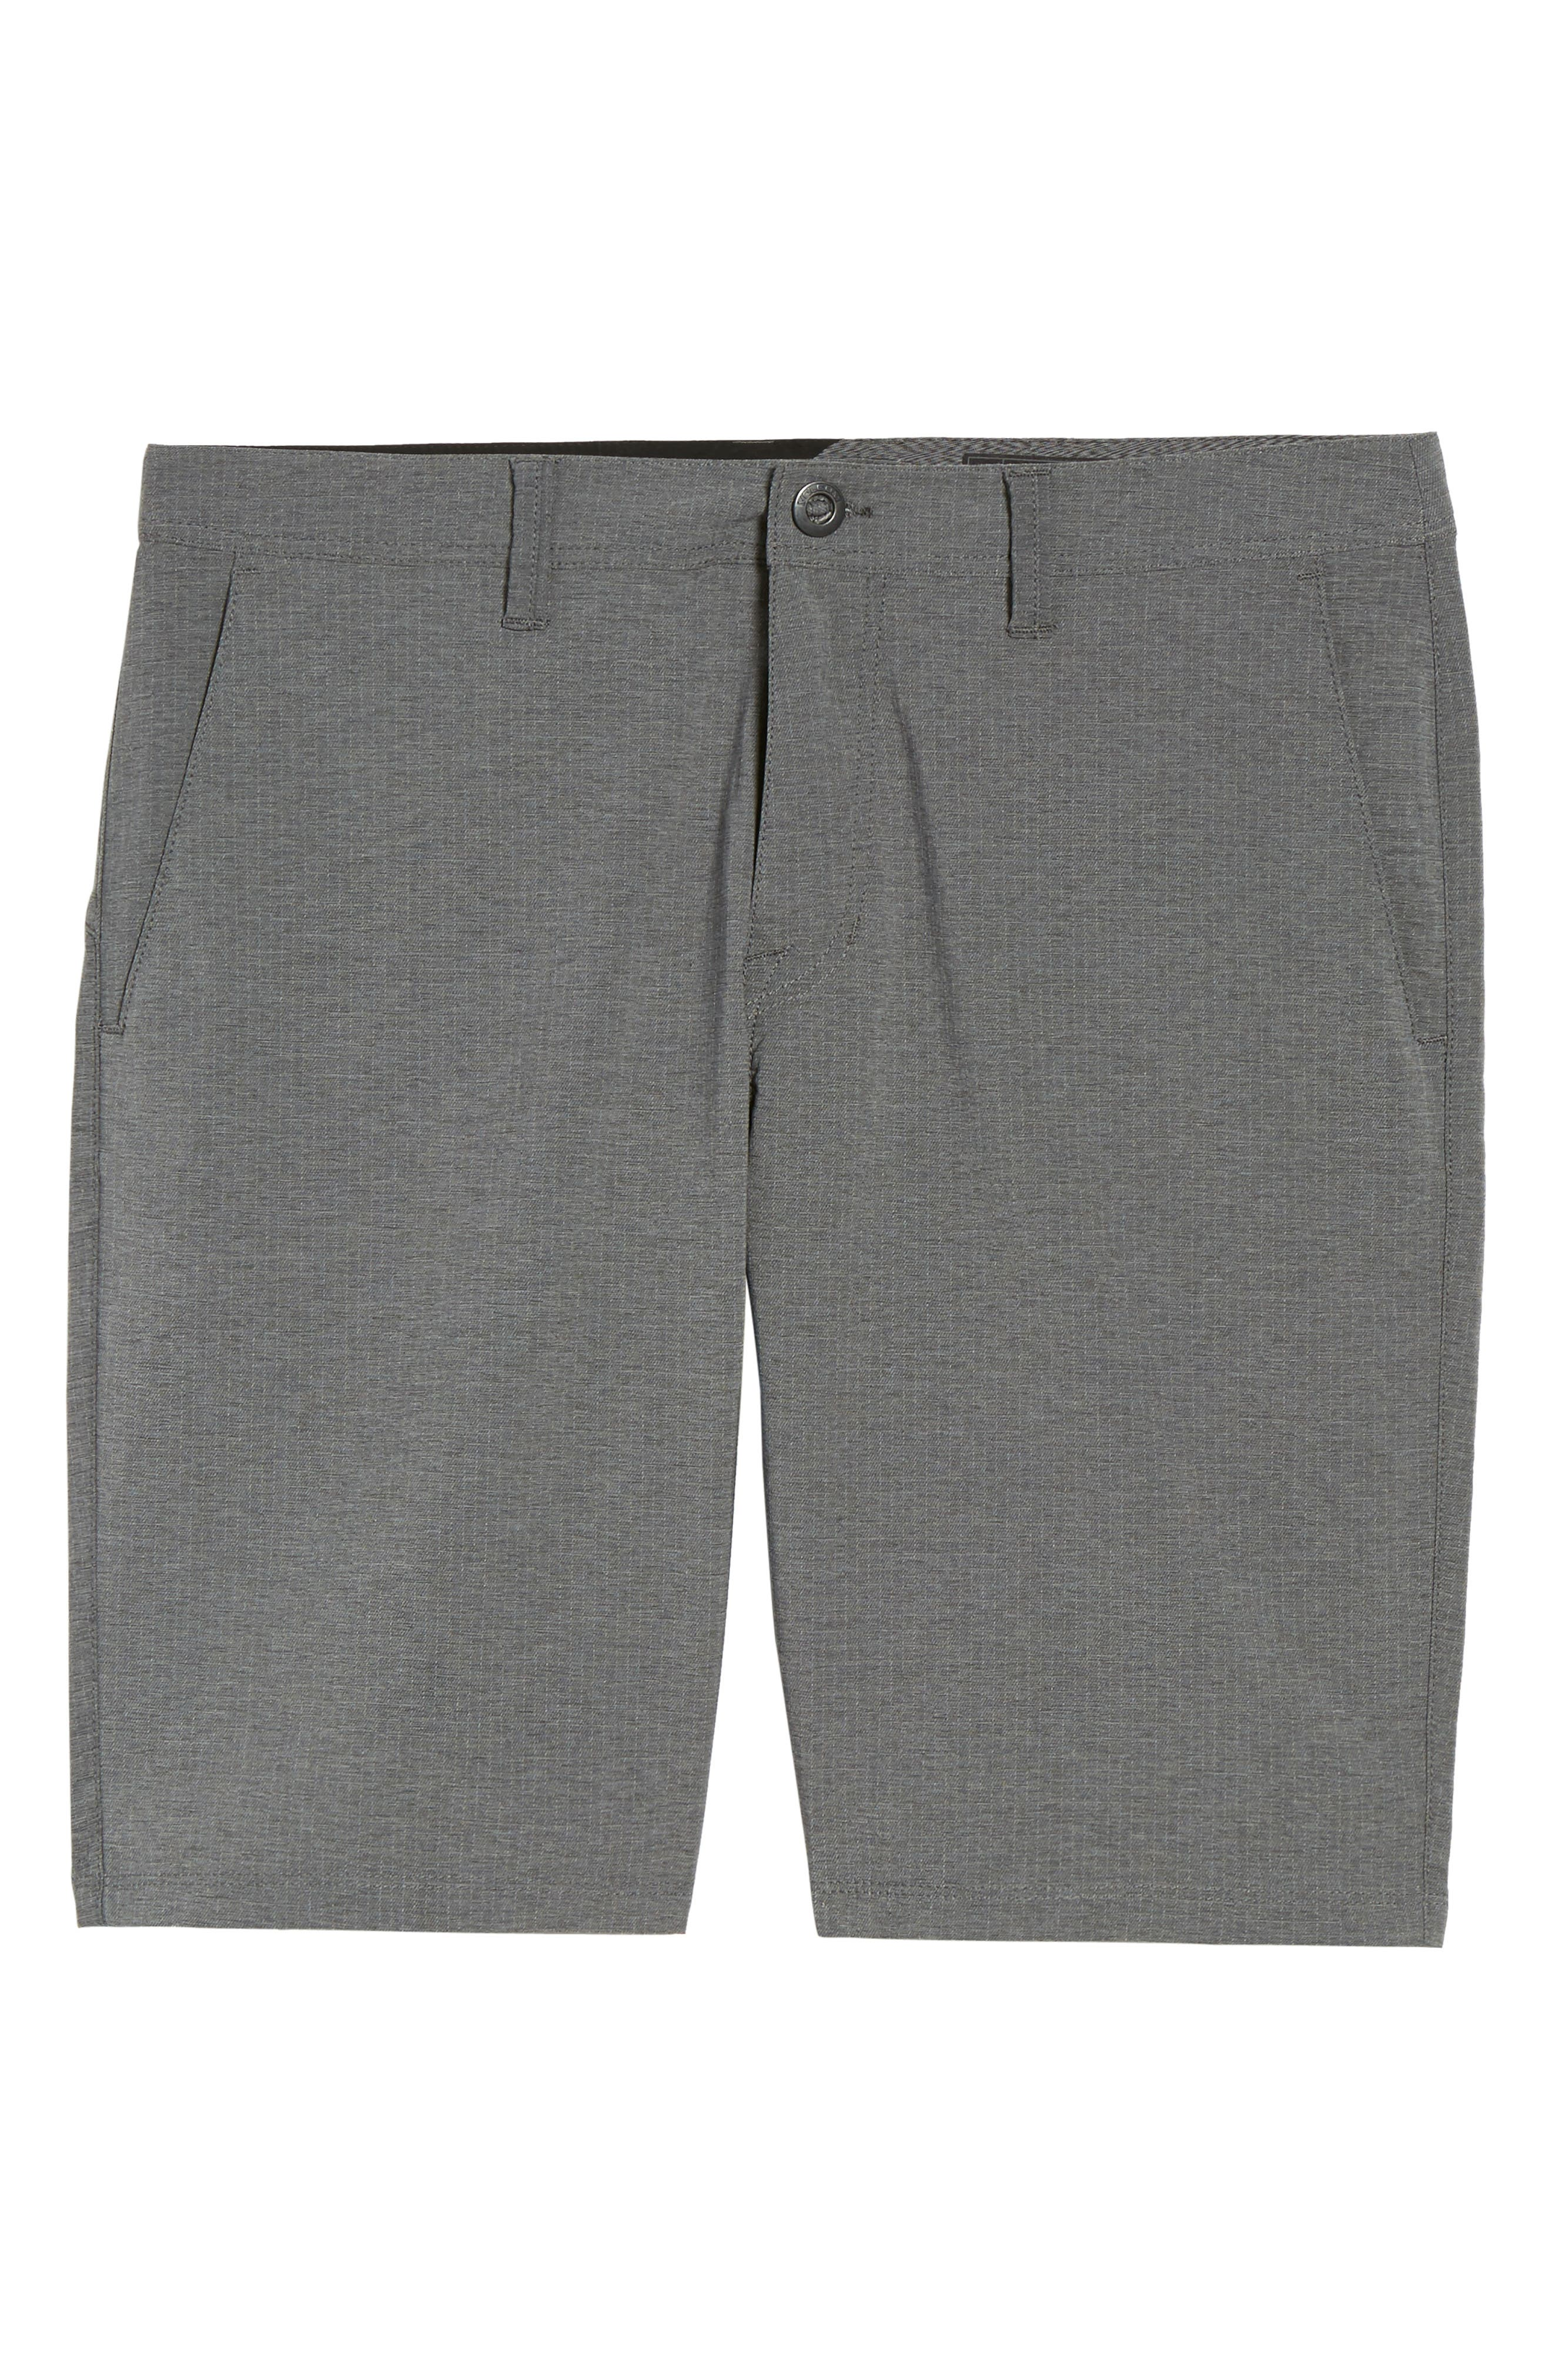 Surf 'N Turf Shorts,                             Alternate thumbnail 6, color,                             020